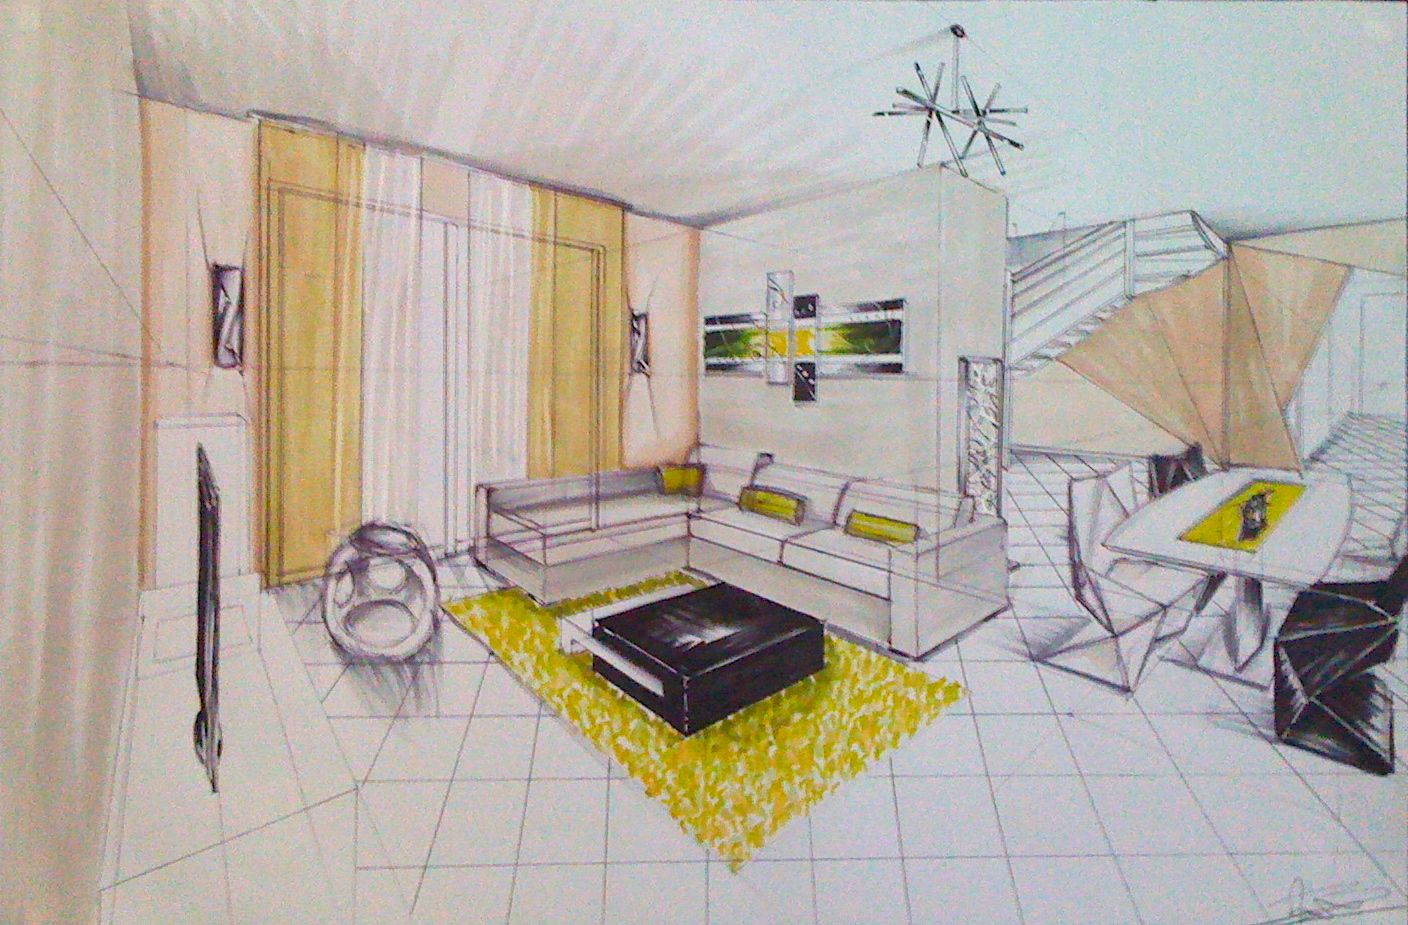 plan decoration interieur maison meilleures images d of dessin deco interieur. Black Bedroom Furniture Sets. Home Design Ideas